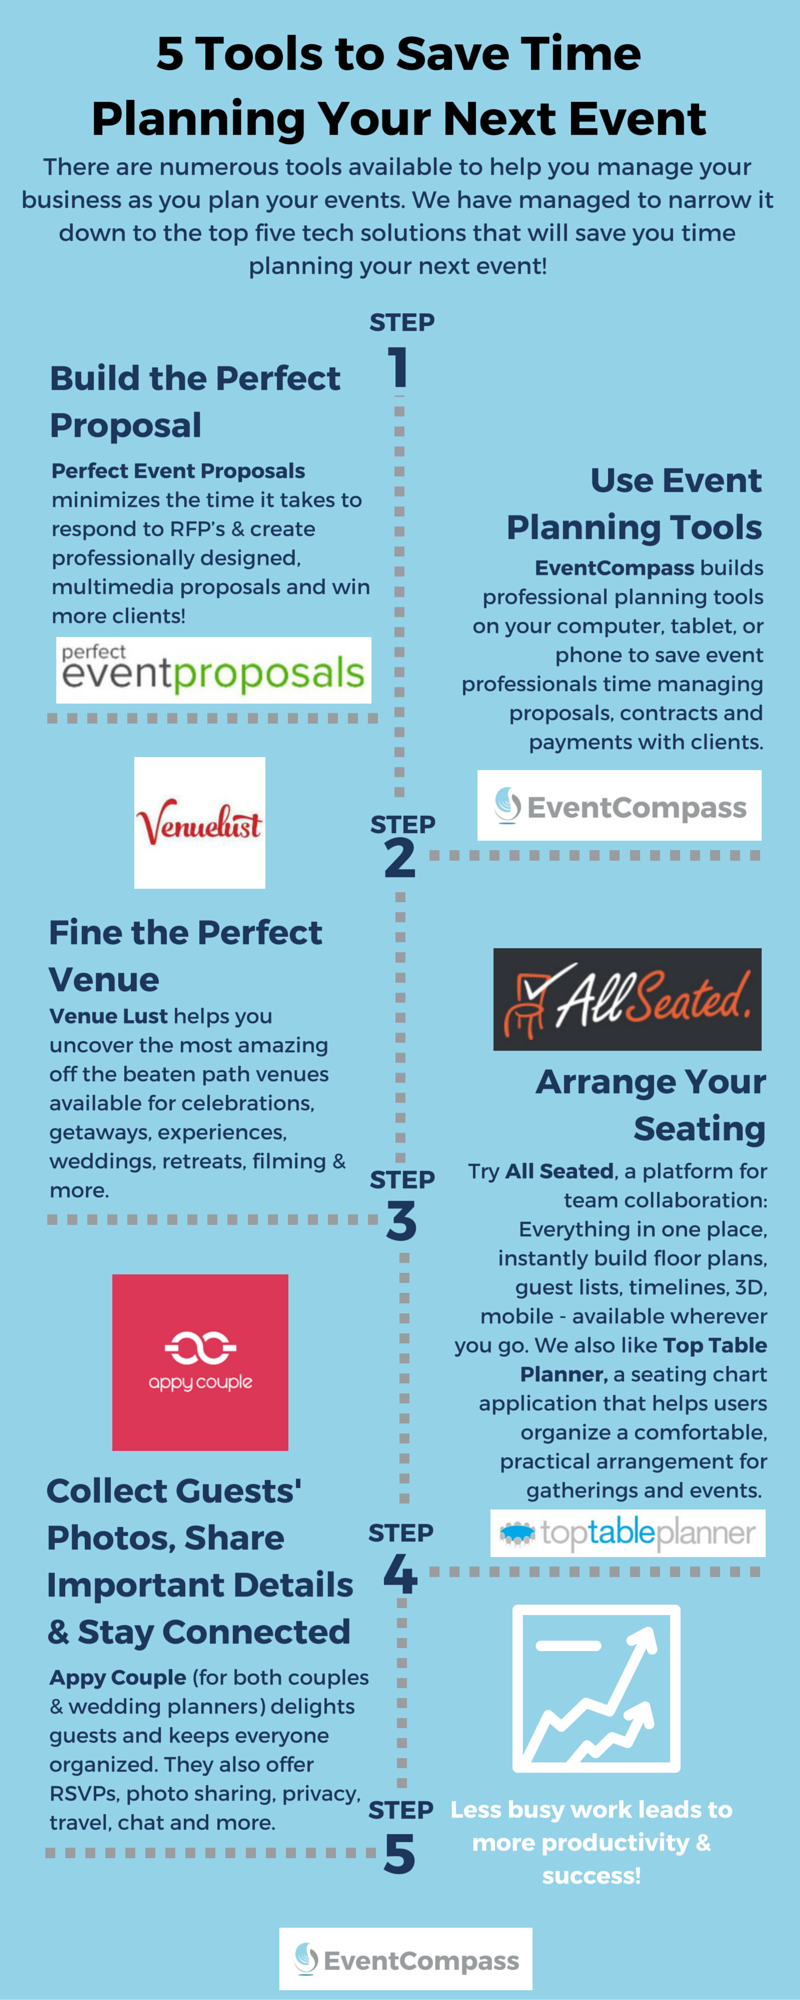 1) Perfect Event Proposals  2)EventCompass  3)Venue Lust  4)All Seated  5)Top Table Planner 6)Appy Couple